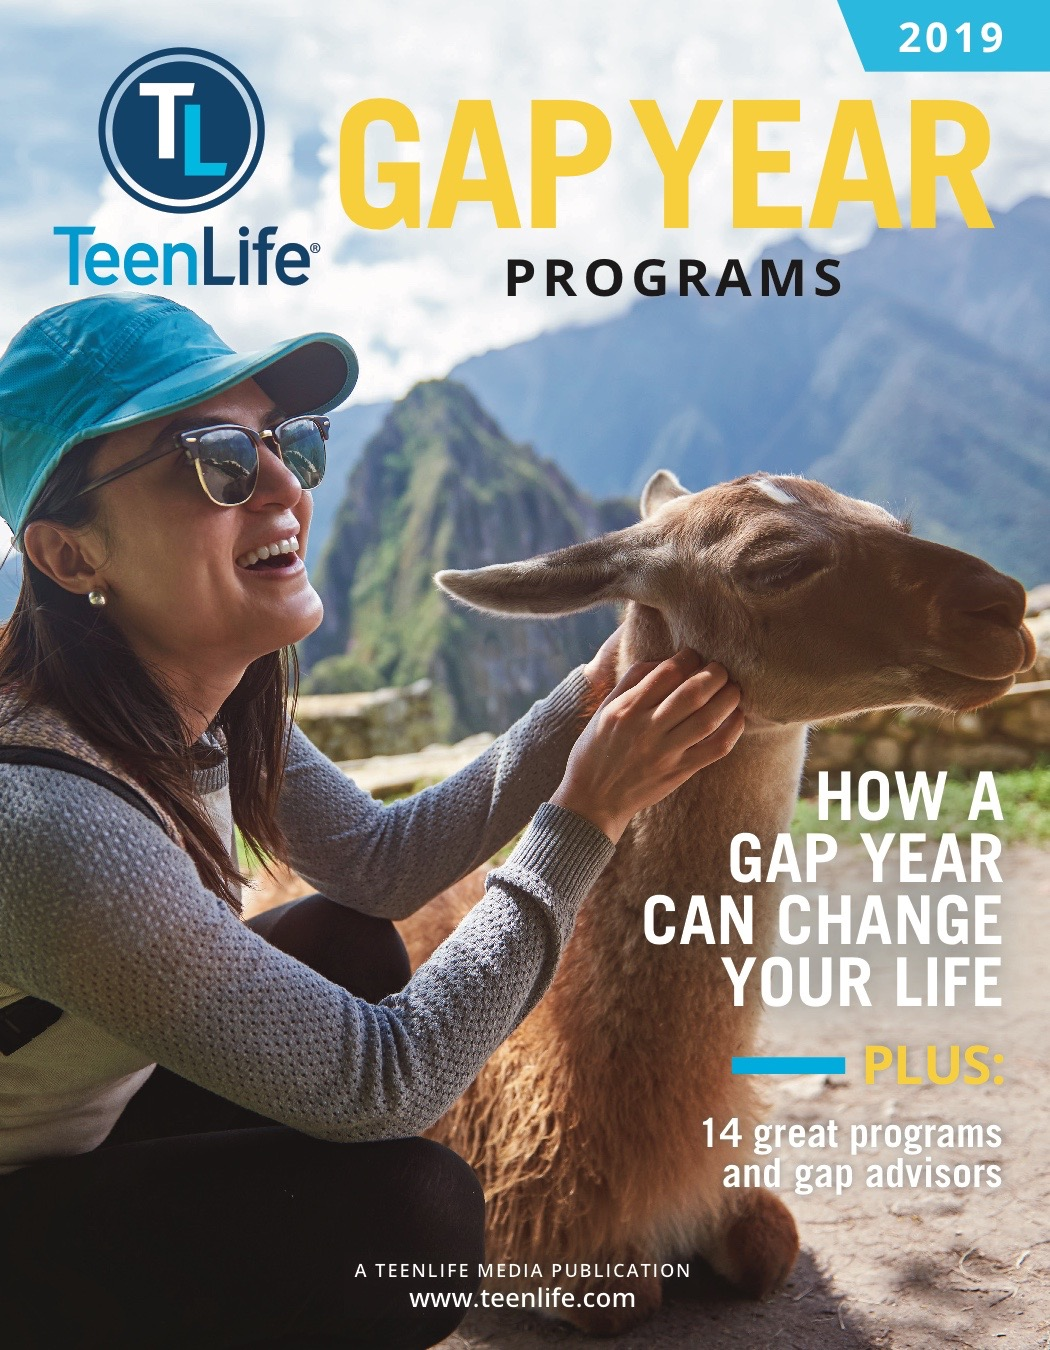 Guide to Gap Year Programs 2019